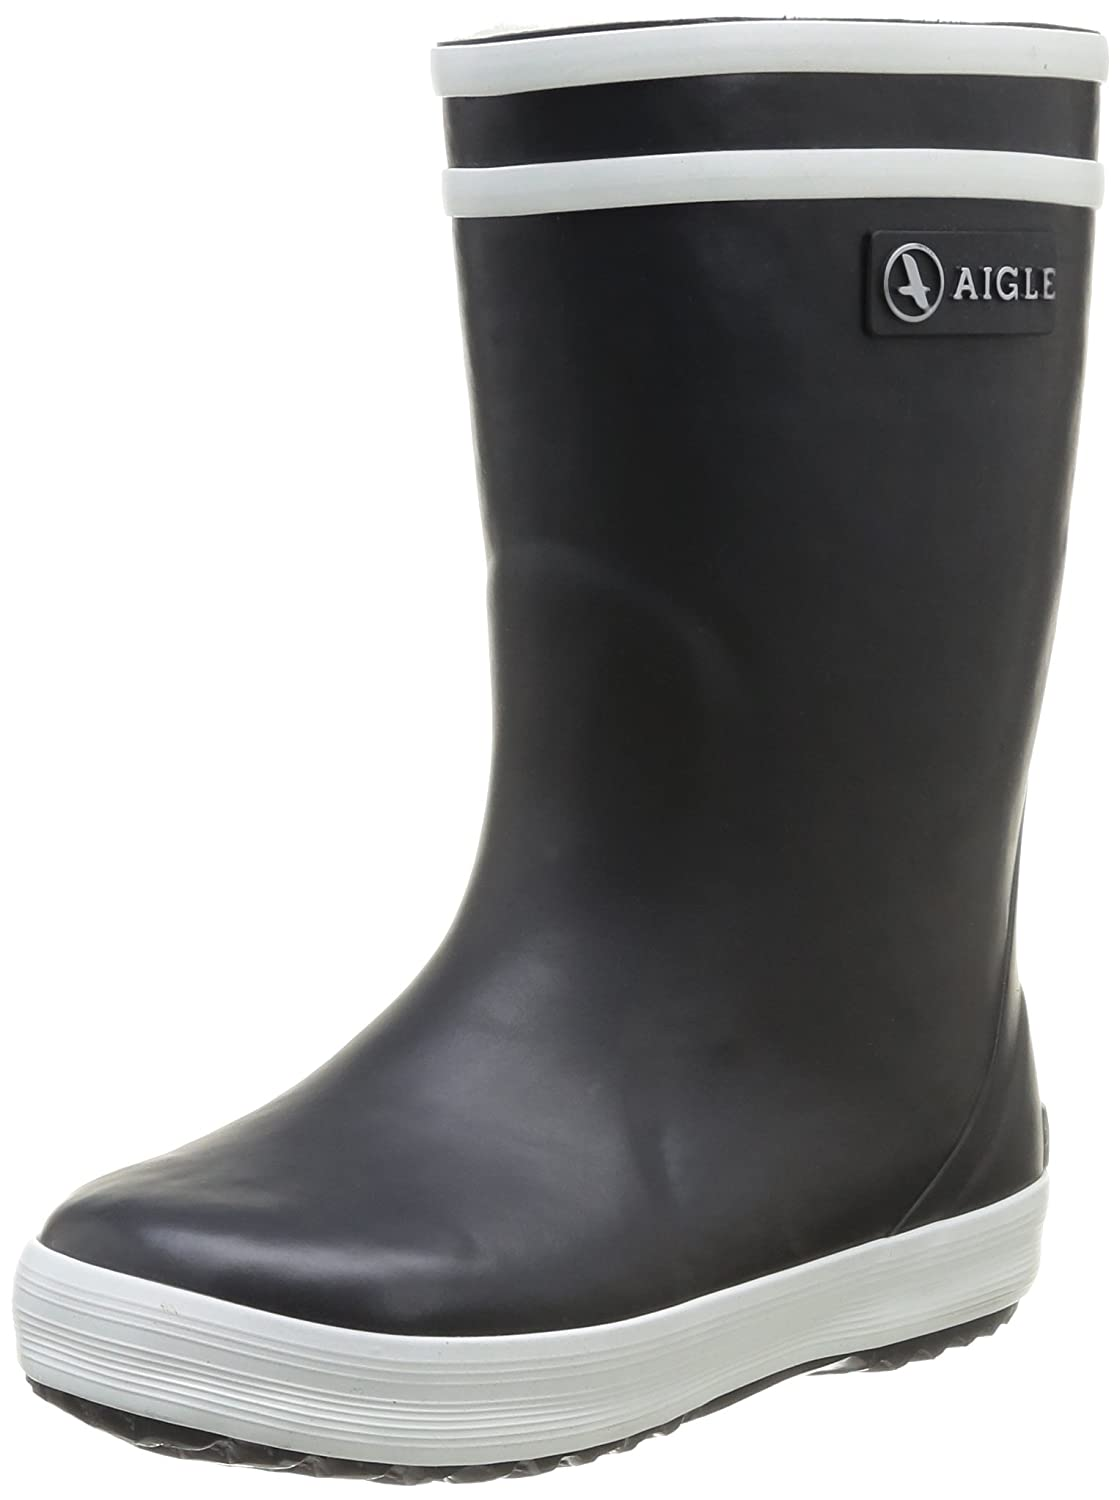 Aigle Lolly Pop Fur Botas de nieve unisex